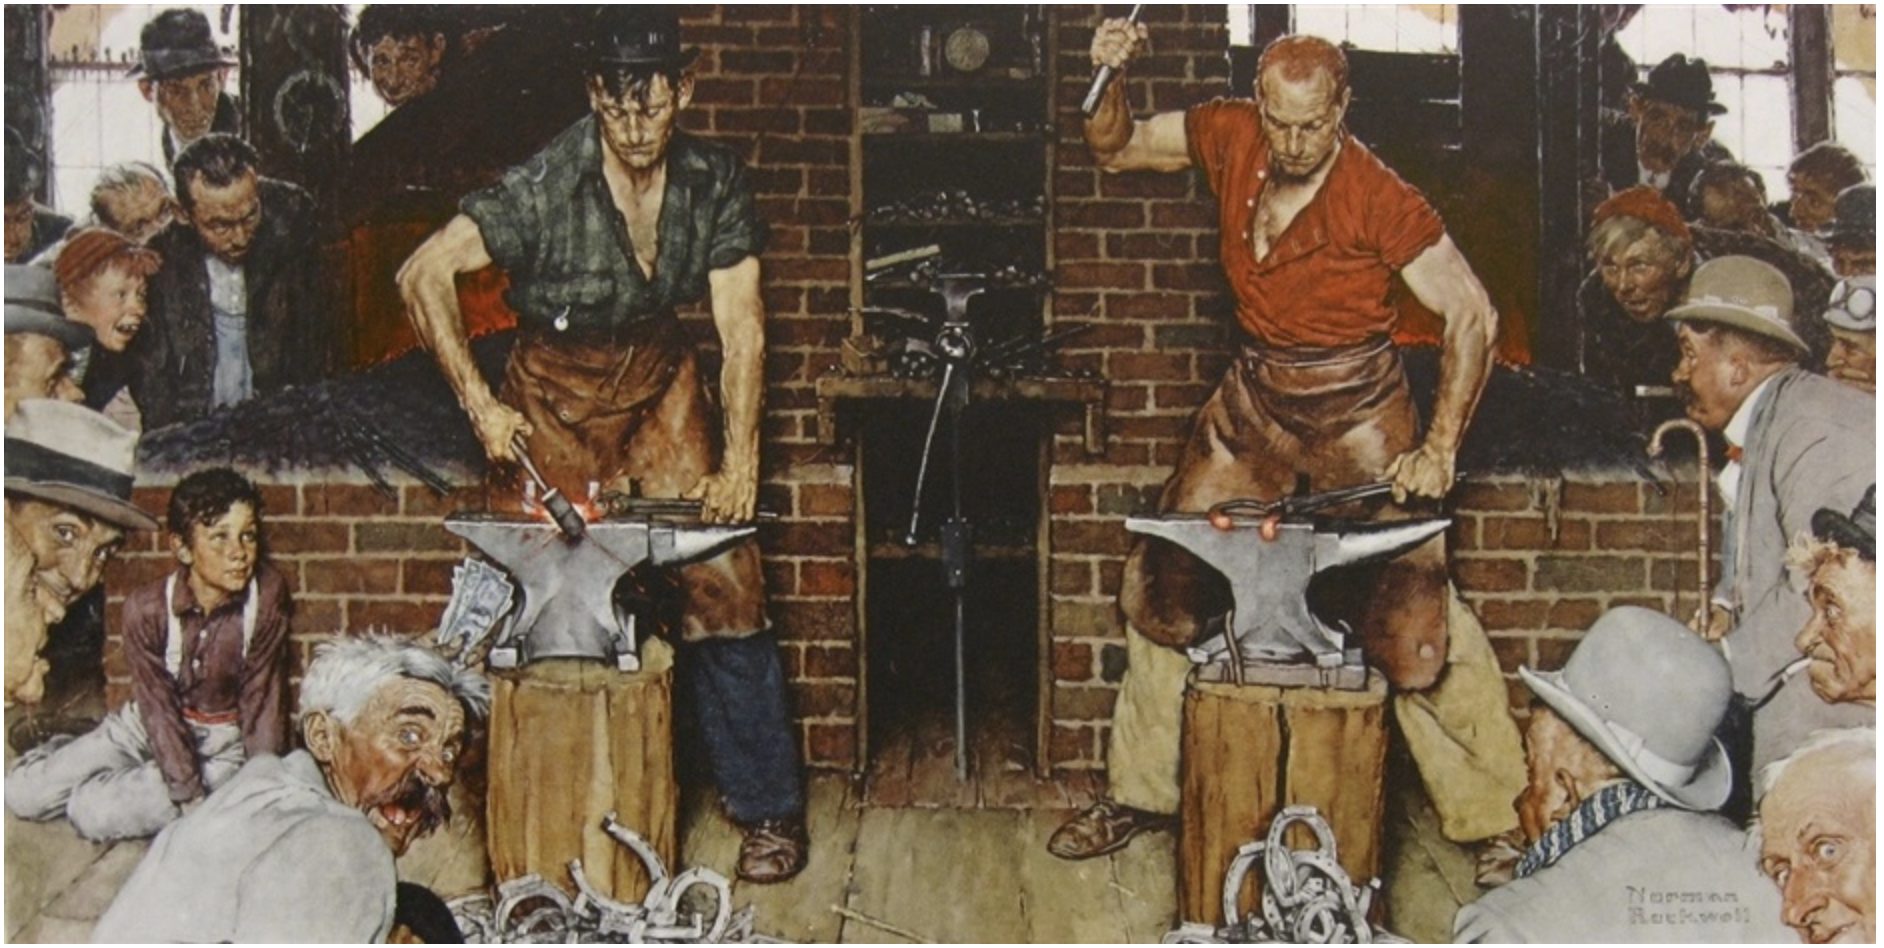 American artist Norman Rockwell Oil on Canvas Painting Blacksmith's Boy, New York Auction House, Houston Auction, Dallas Auction, San Antonio Auction